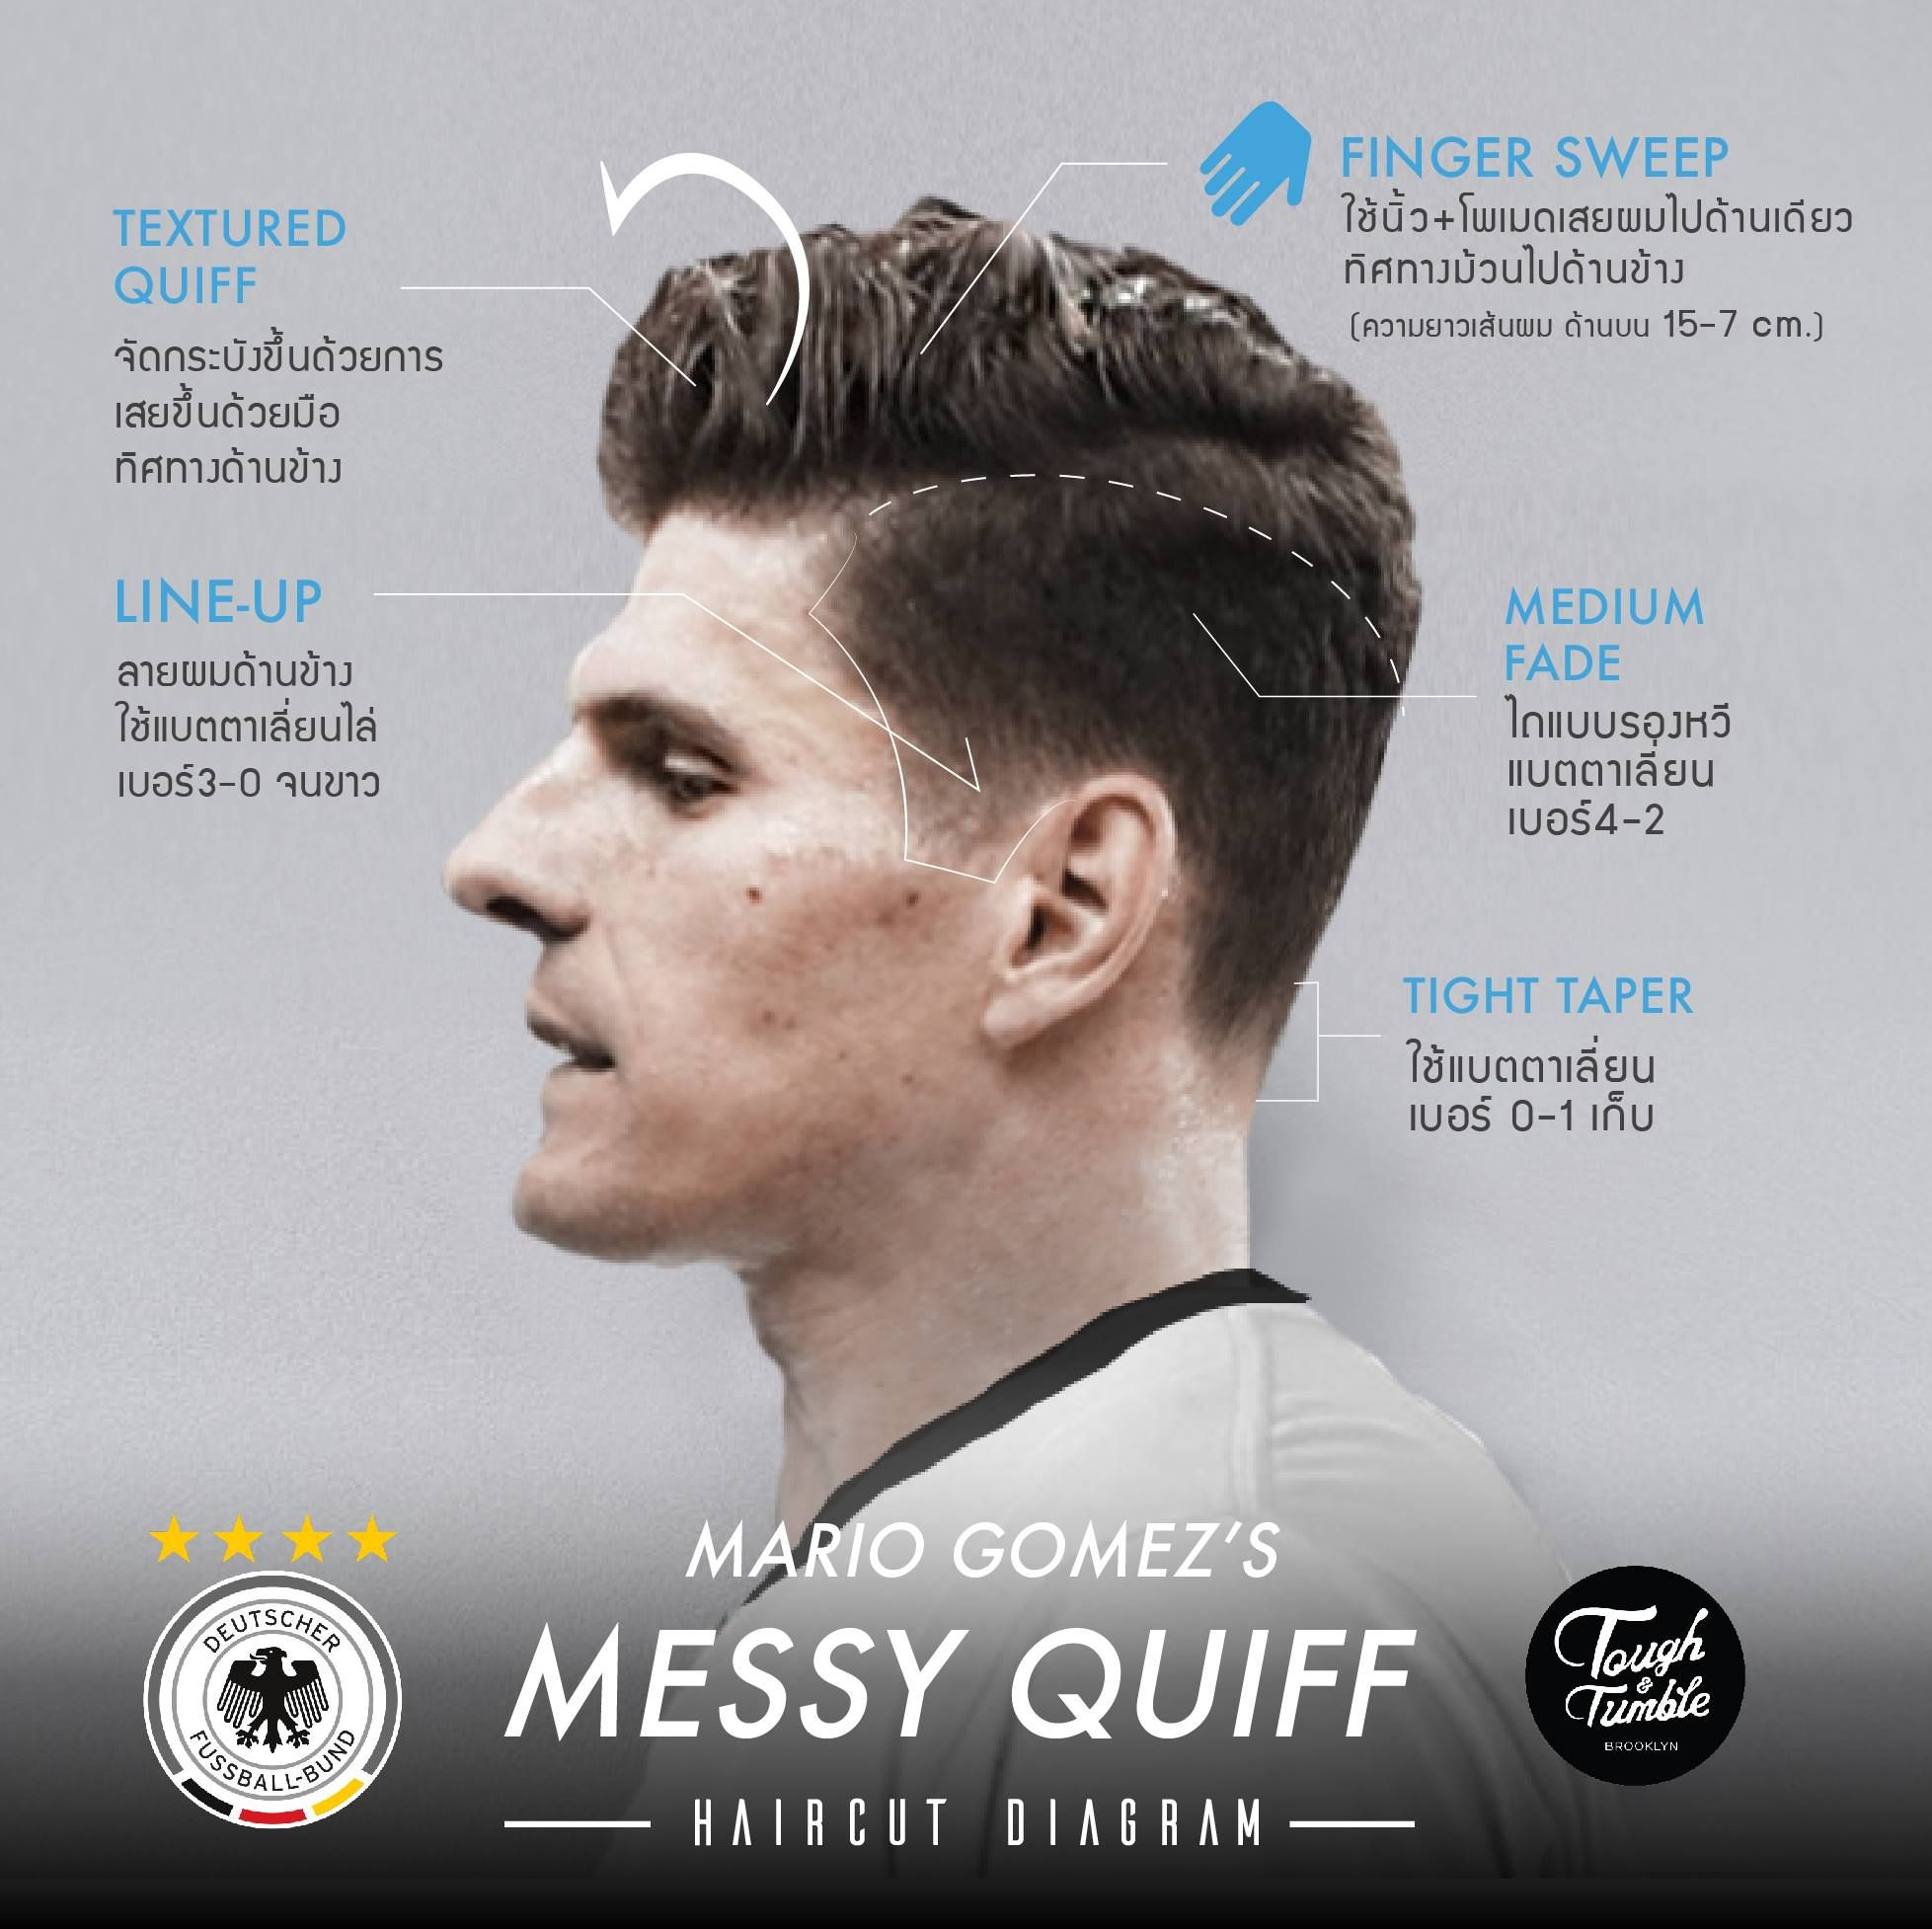 Mario Gomez Messy Quiff Haircut Diagram